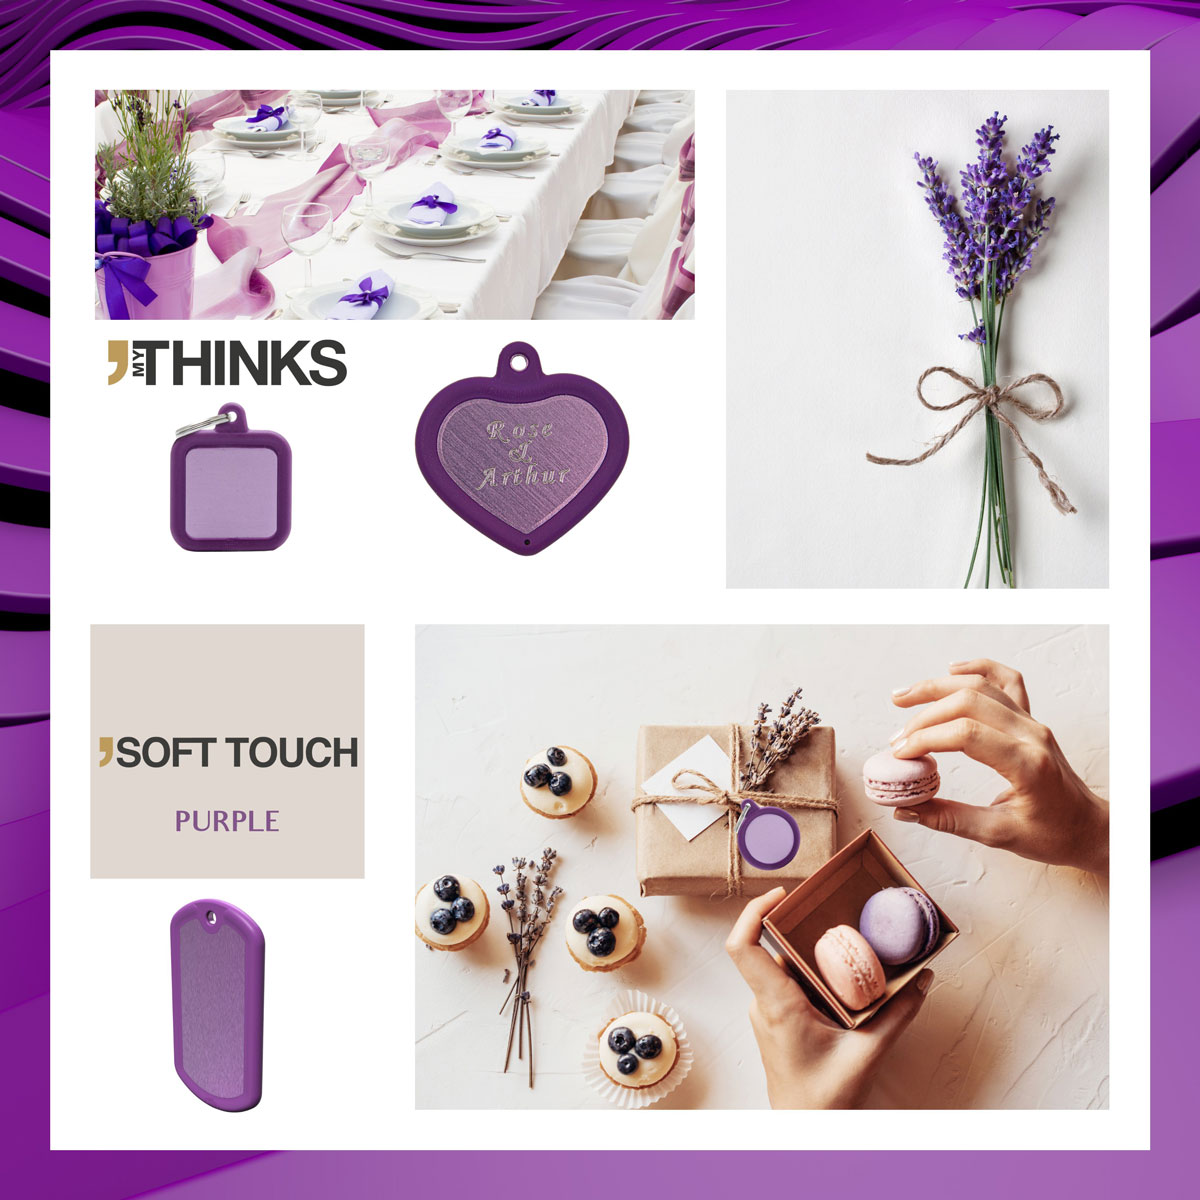 Mood board Soft touch collection gifts with purple rubber braid on purple anodized aluminum charm for the wedding and personal events market